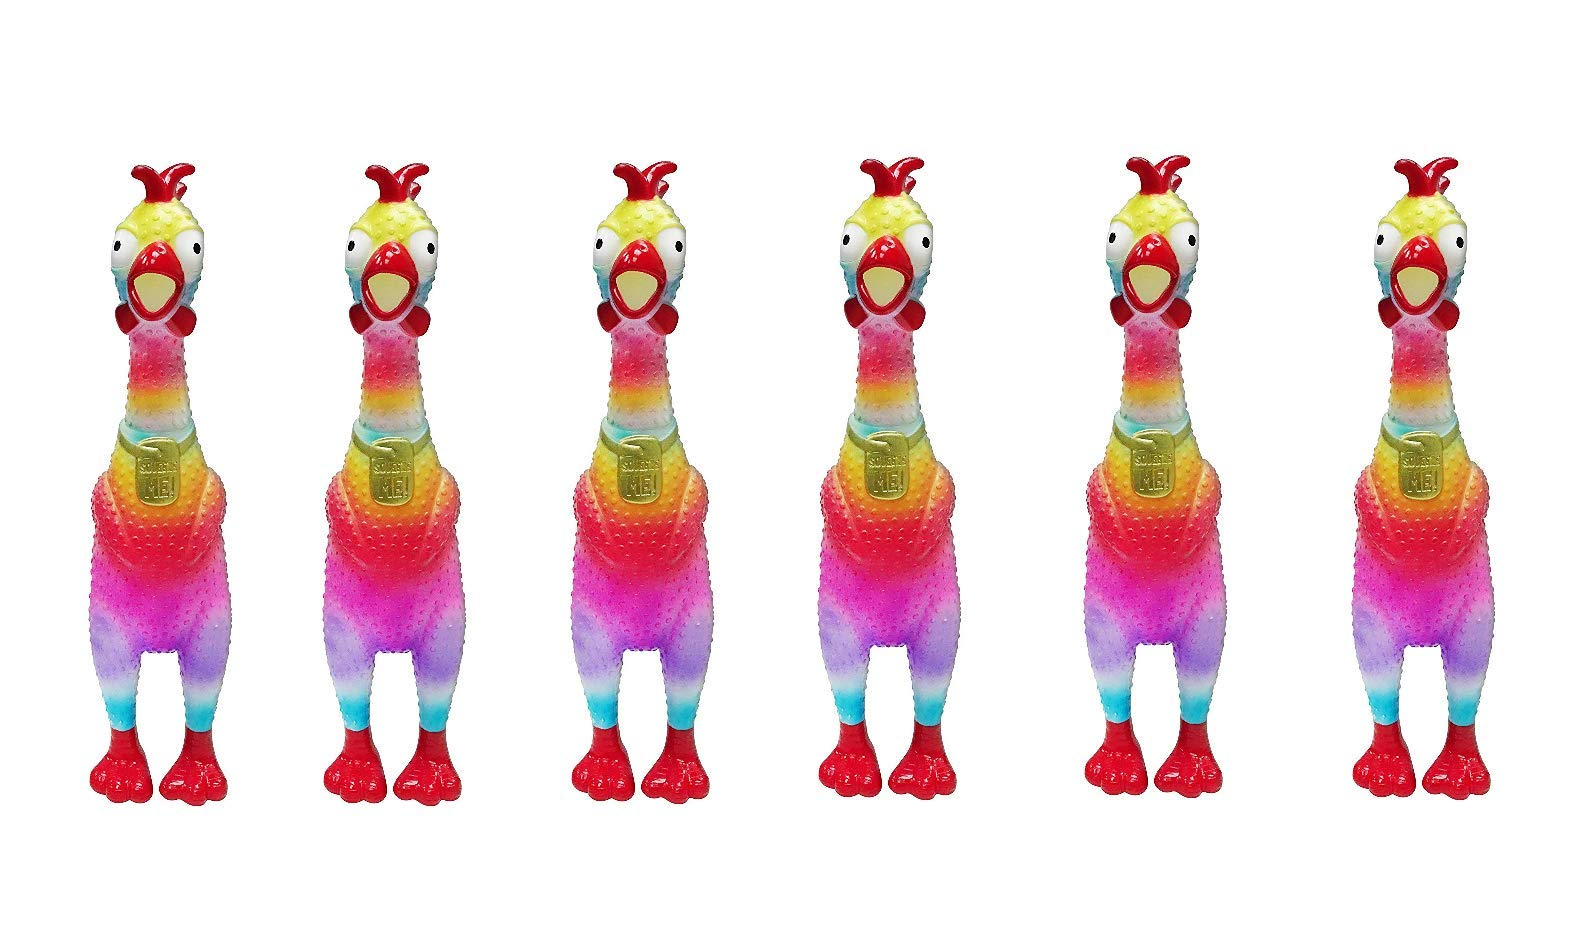 Animolds XL Tie Dye Screaming Chicken Non Toxic Rubber Chicken Toy Best Chicken Toys for Kids and Adults Party Value Pack (6-Pack)